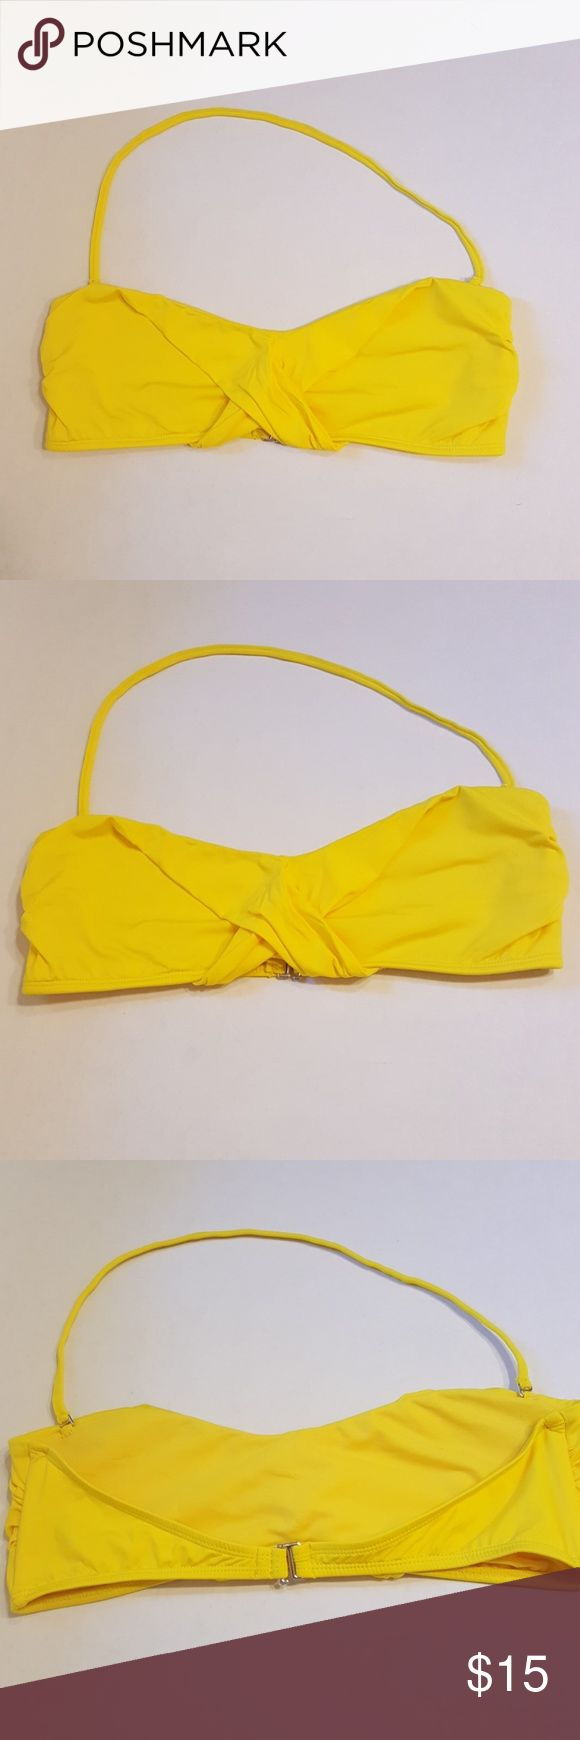 Bright Yellow Bandeau Bikini Top Large Bright Yellow Bandeau Bikini Top Large, no padding, halter straps measures 20 inches and is removeable. Good condition, tiny spot on inside.  All reasonable offers considered   620CS Cole of California Swim Bikinis